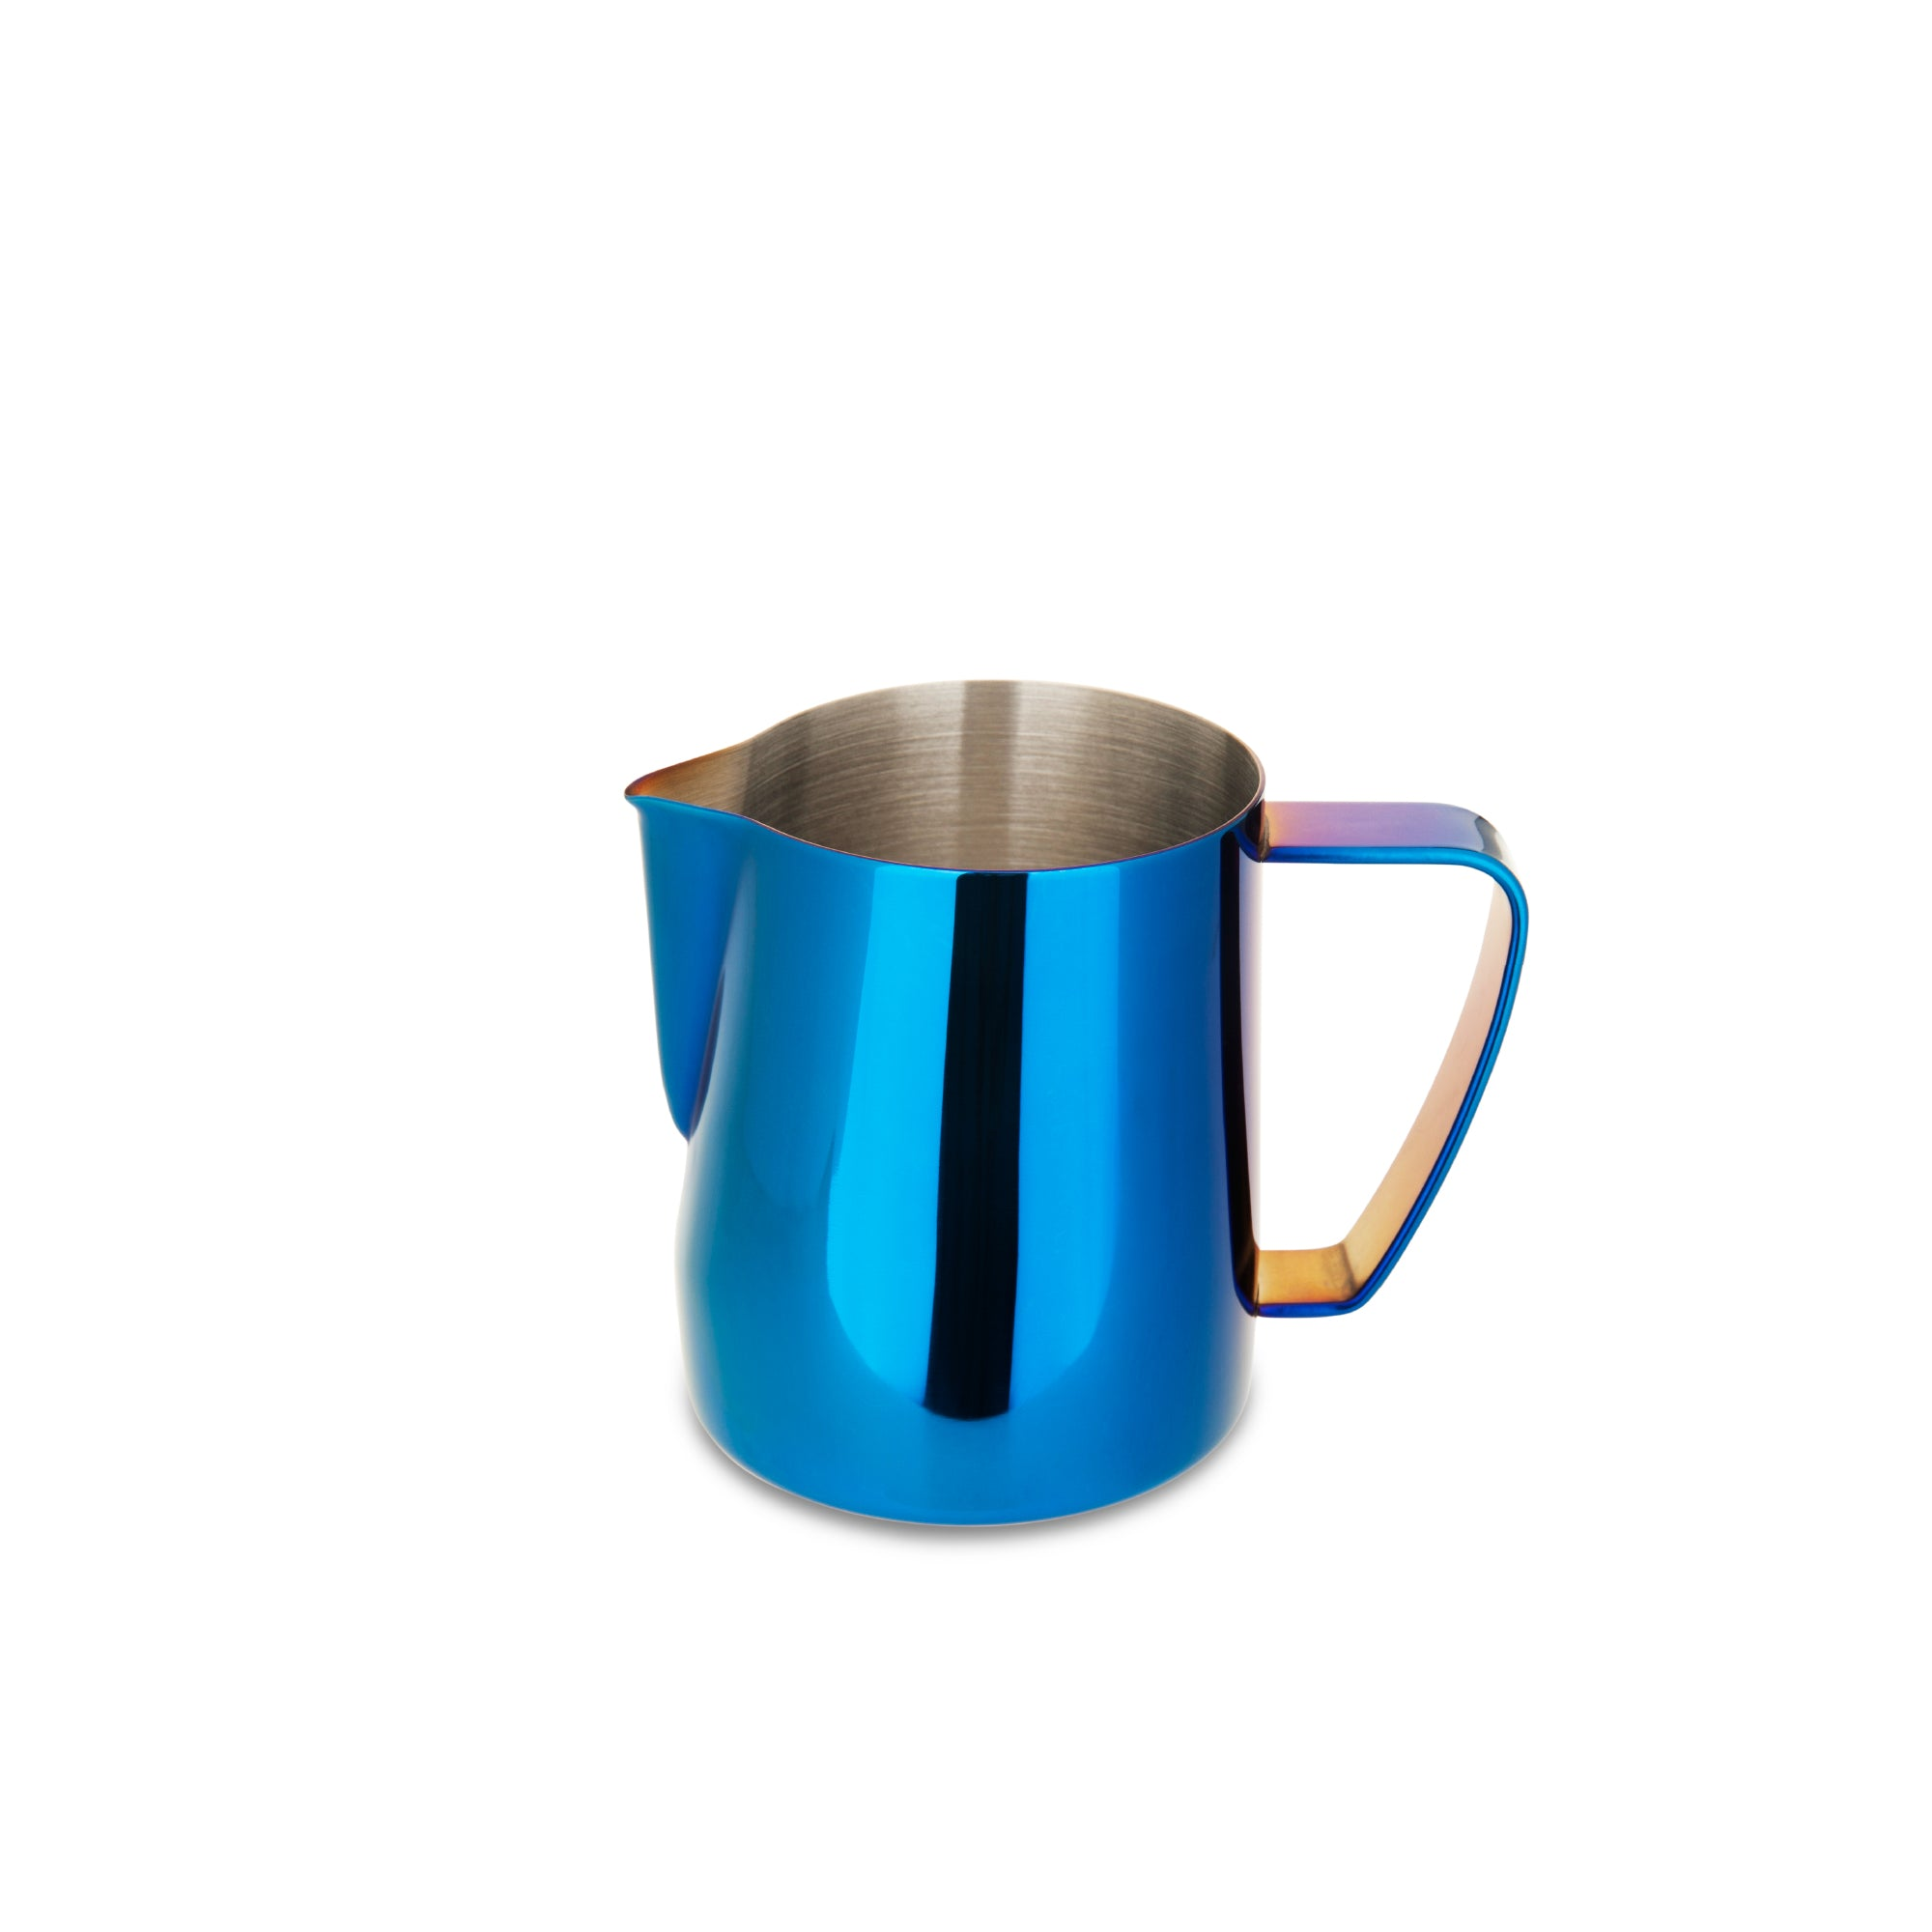 EspressoWorks Stainless Steel Milk Frothing Jug - Blue (350ml)